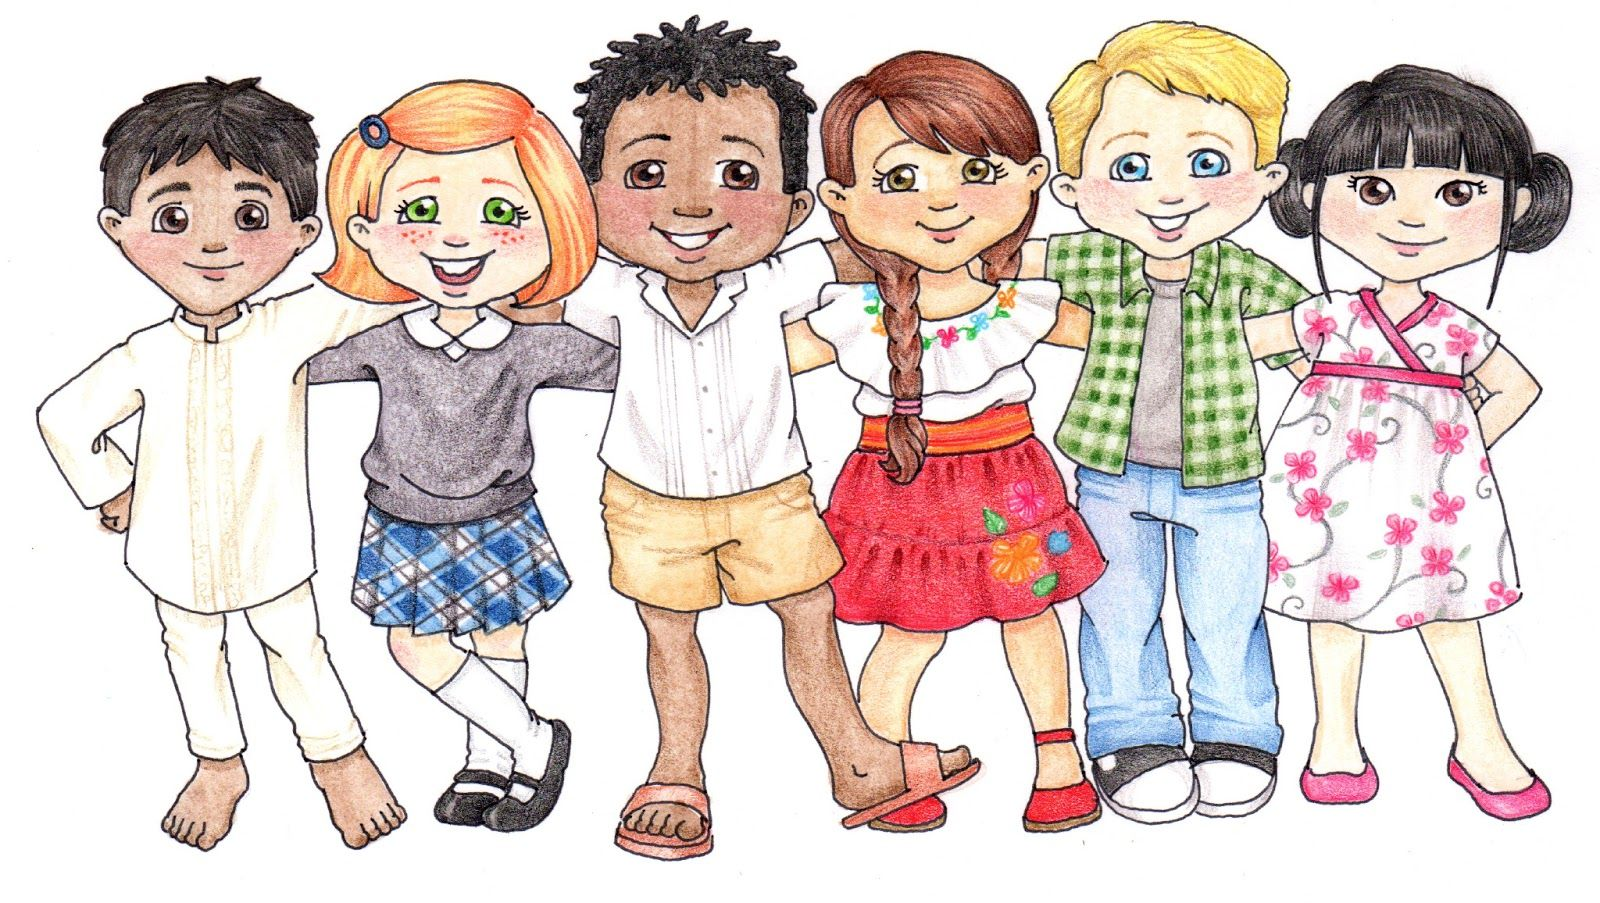 free lds clipart to color for primary children | ... most about the ...